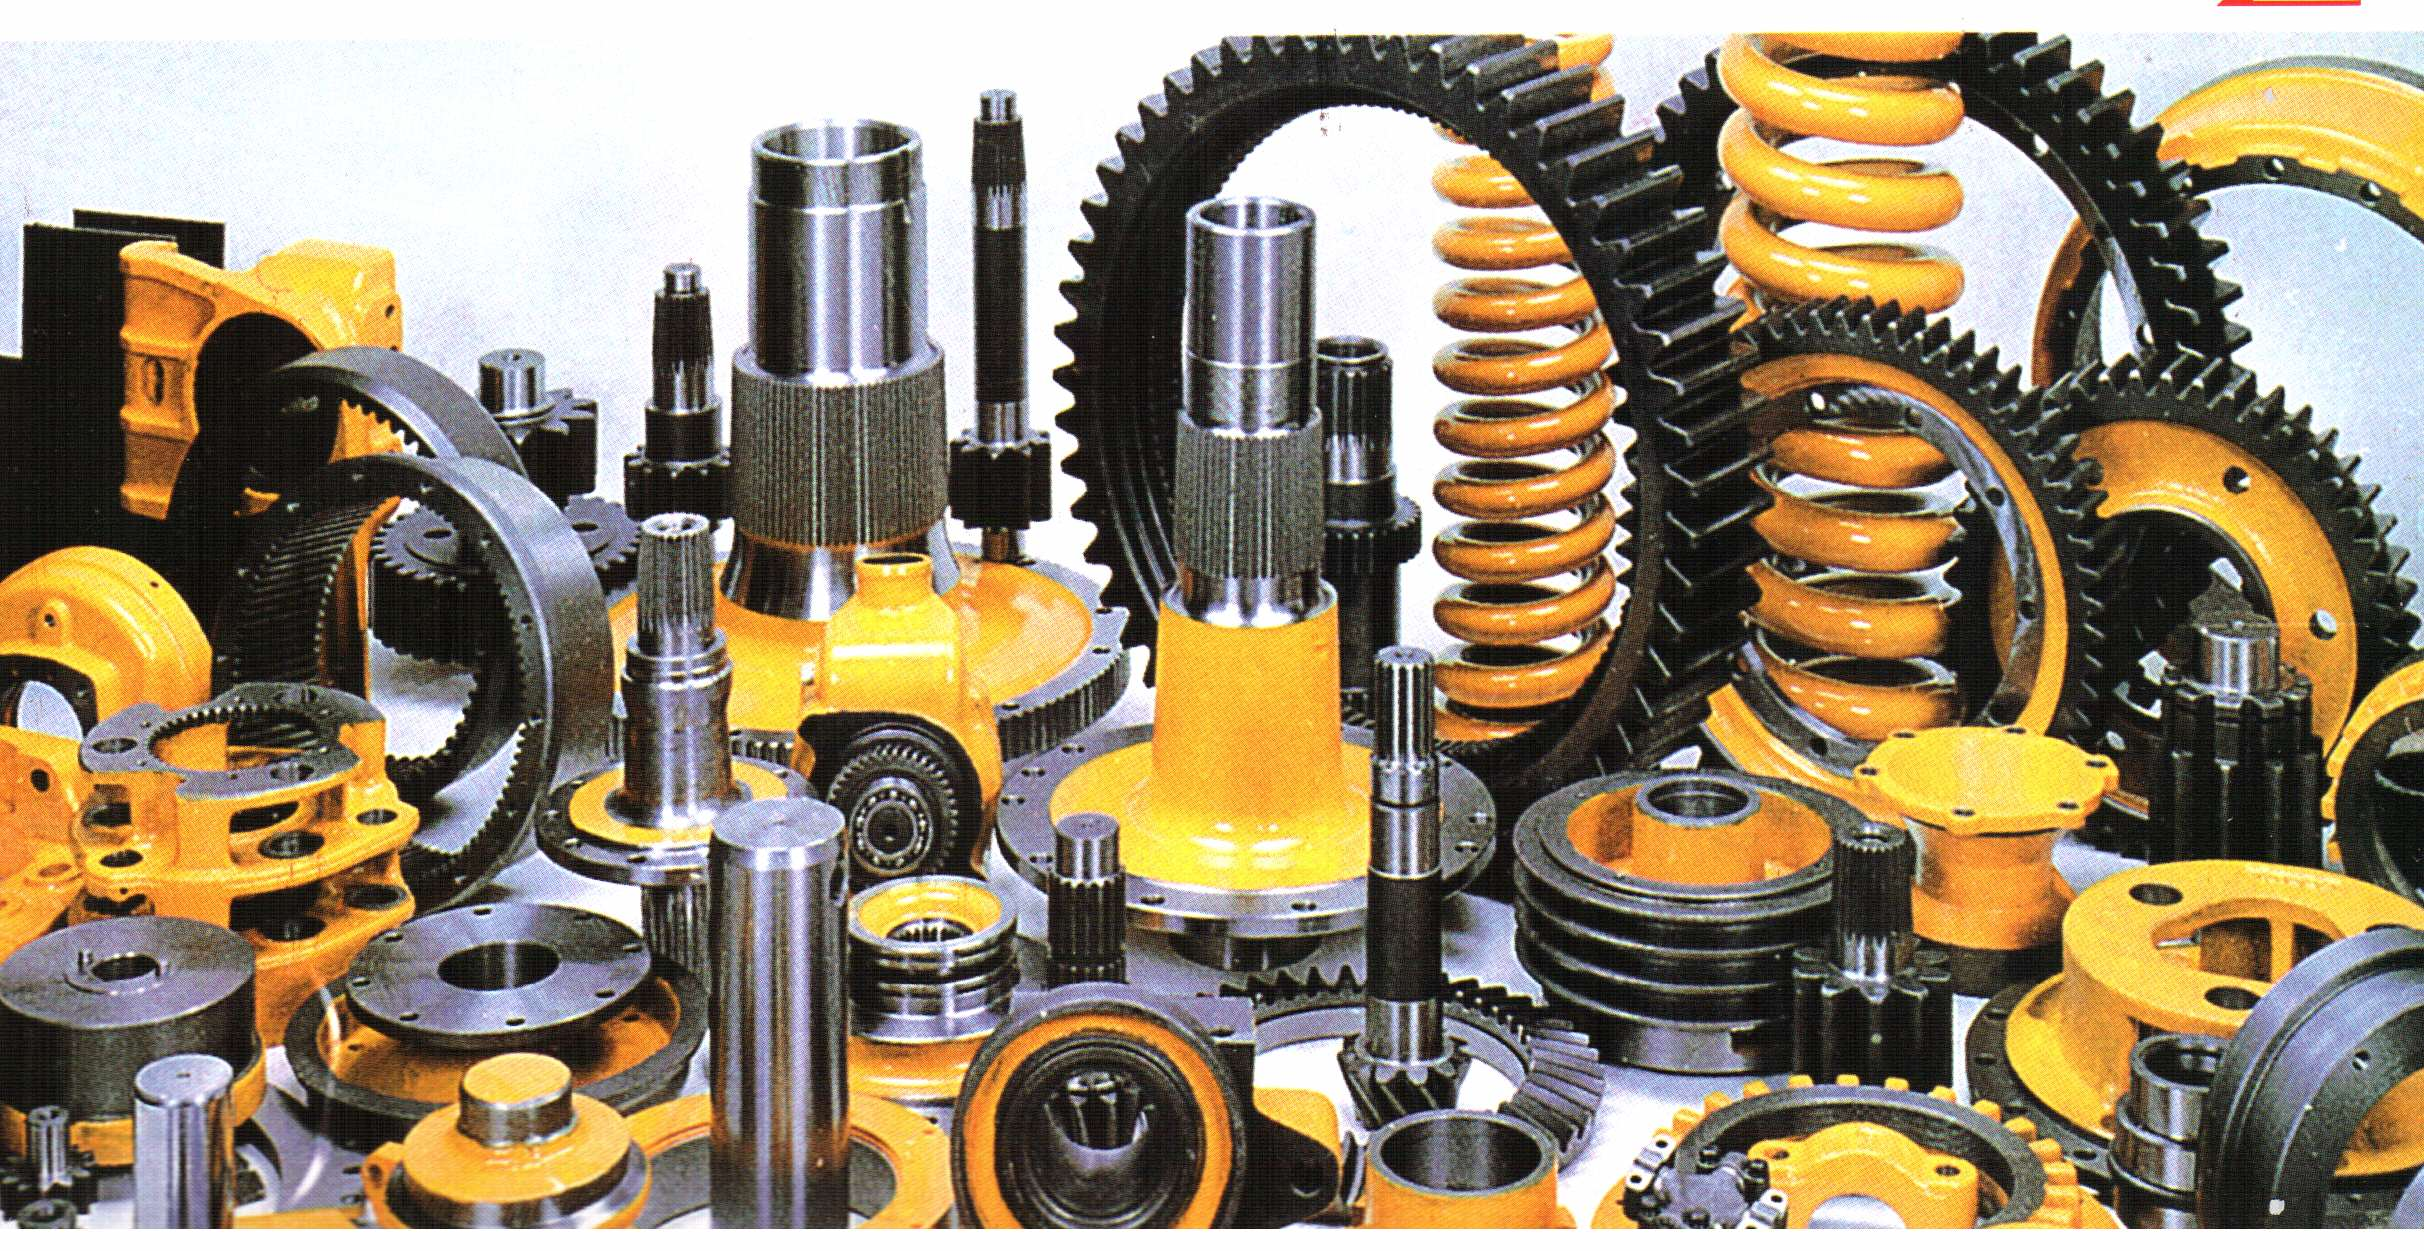 http://advanceglobalsupplies.net/wp-content/uploads/2013/09/part-spare-caterpillar.jpg